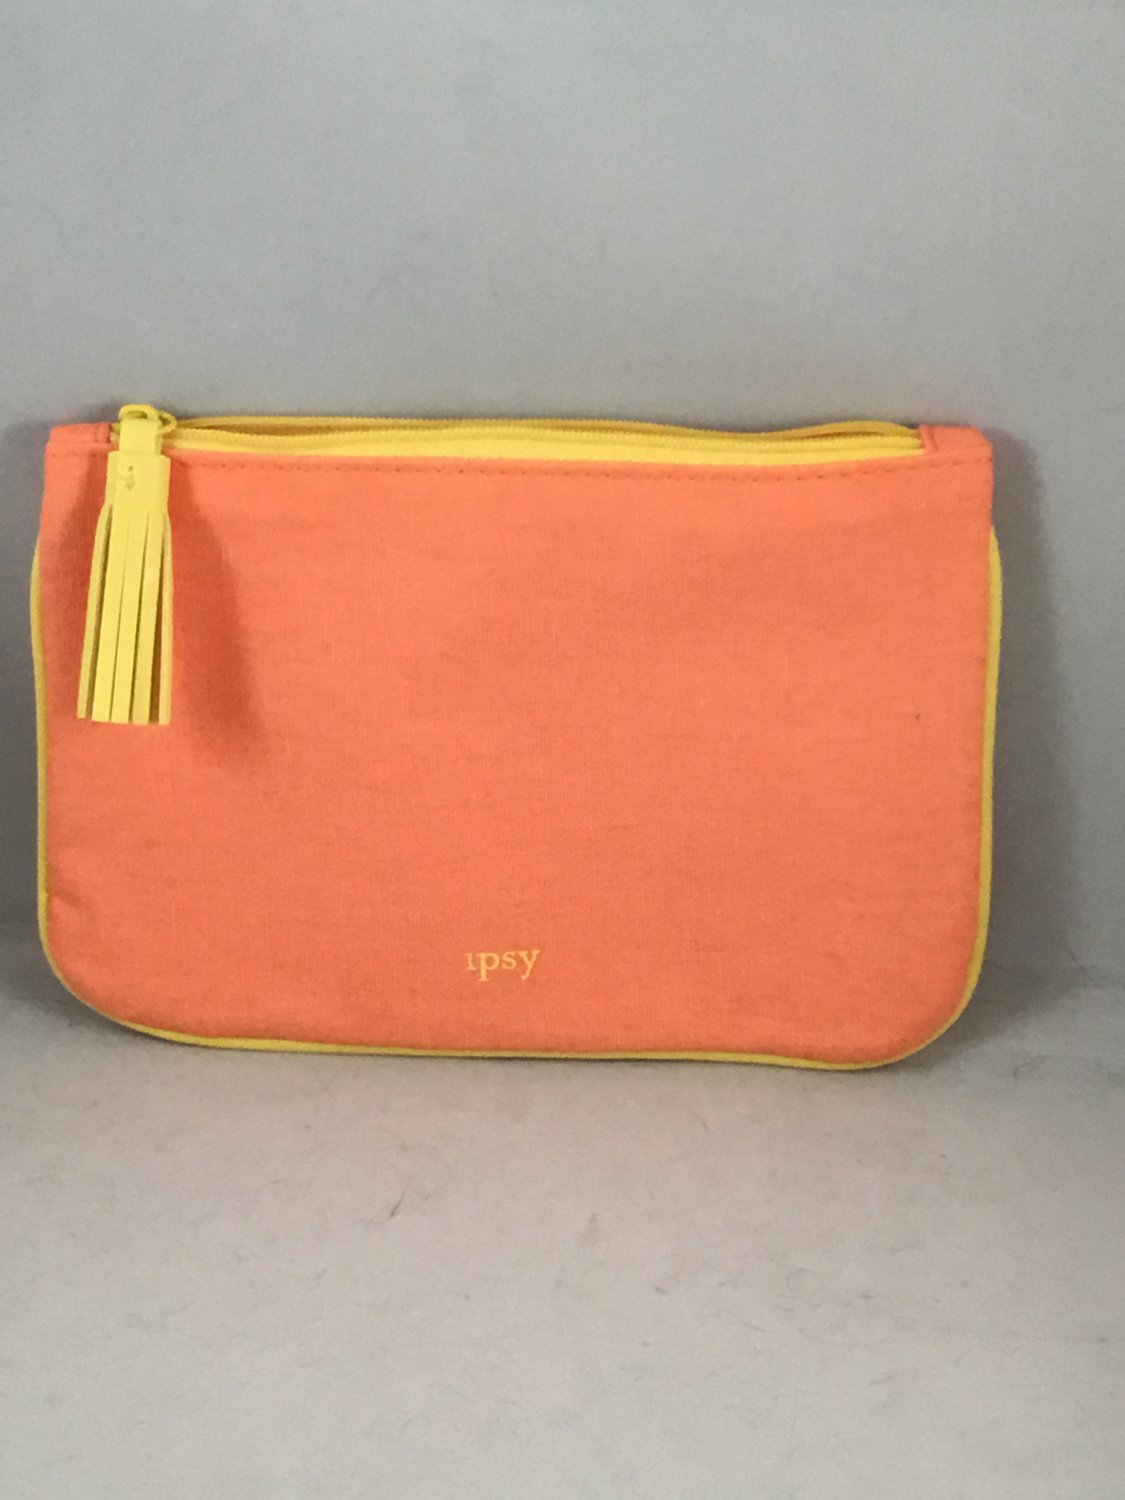 Ipsy MyGlam Glam Bag August 2018 Selfie With No Filter Cosmetic case purse Orange